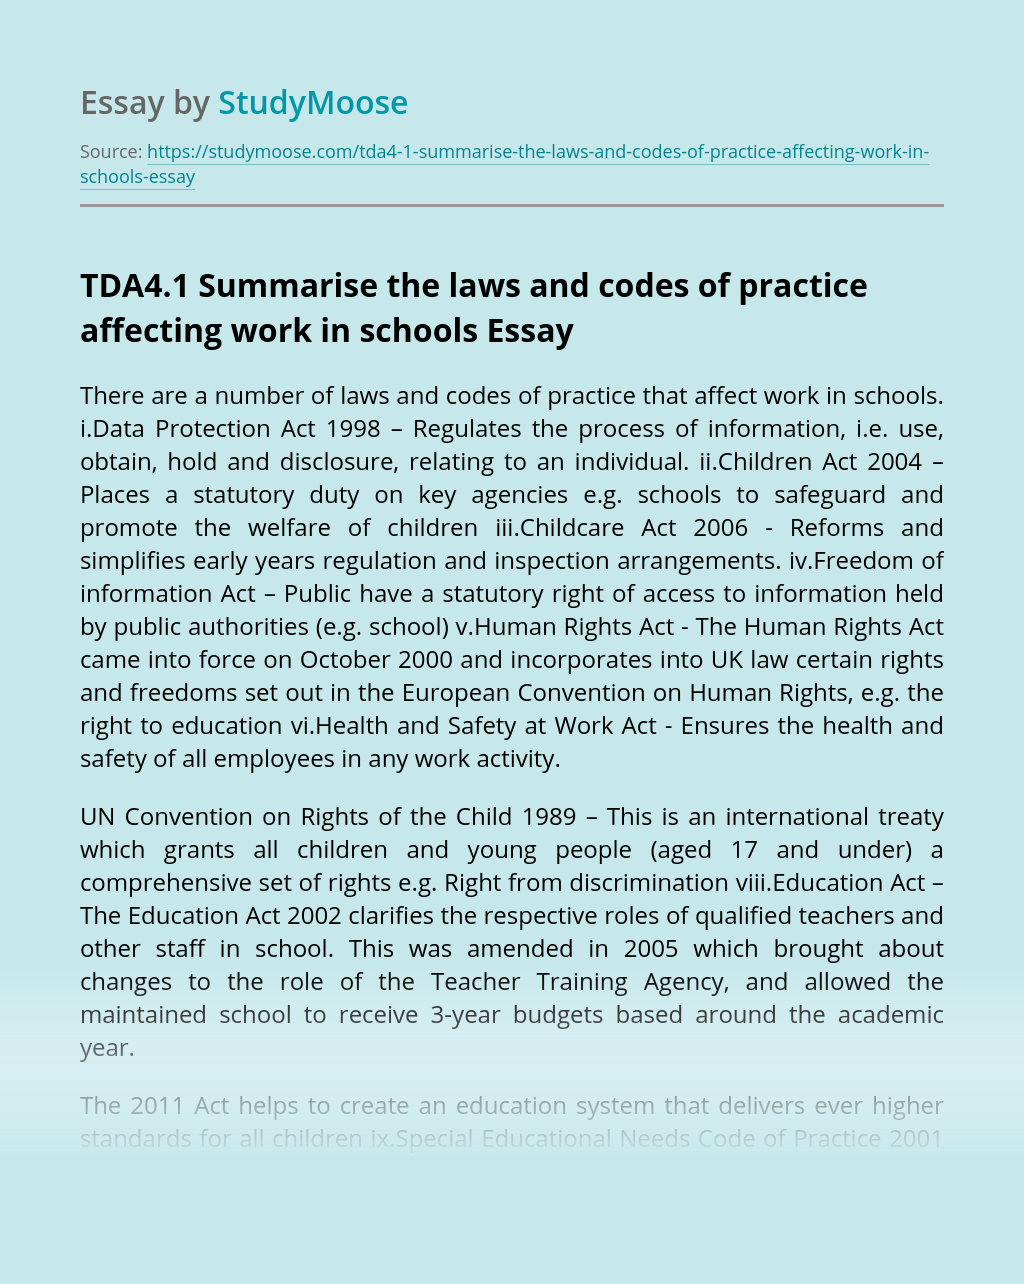 TDA4.1 Summarise the laws and codes of practice affecting work in schools